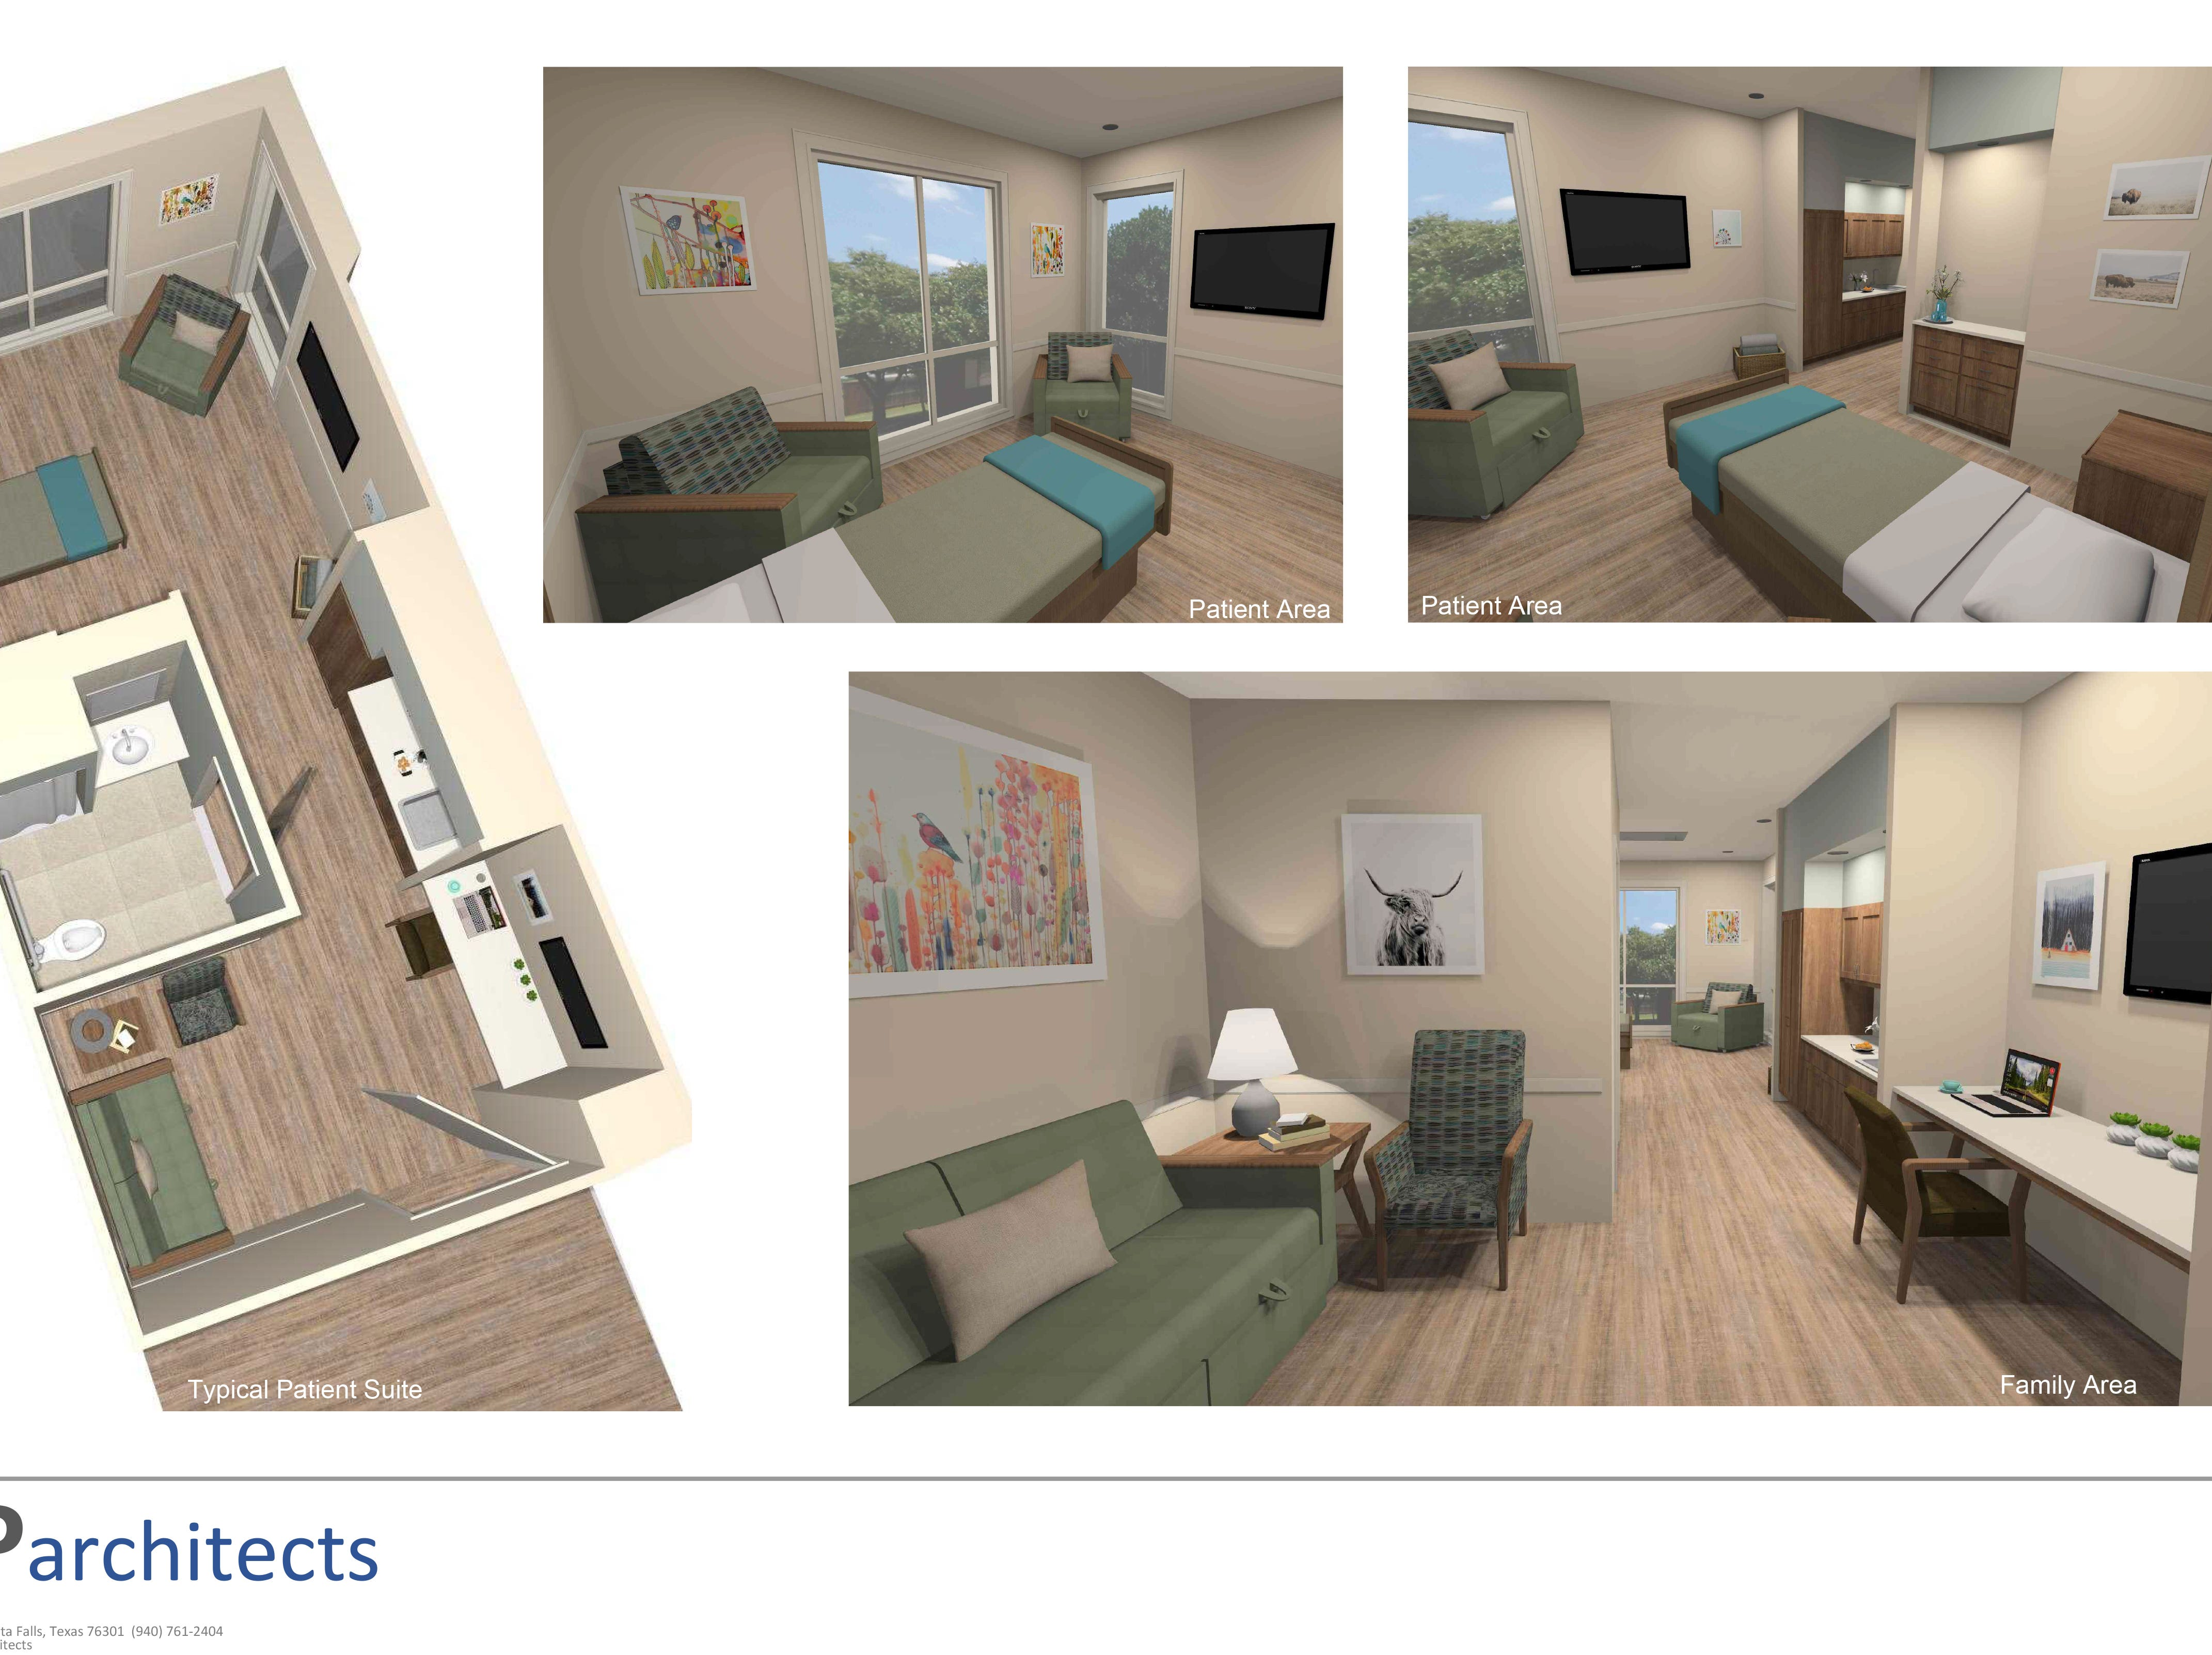 In this conceptual illustration, the 24 inpatient rooms in the planned Hospice of Wichita Falls facility are characterized as suites. The $`5 million capital campaign entered the public phase in February and 83 percent -- $12.4 million -- has been raised.